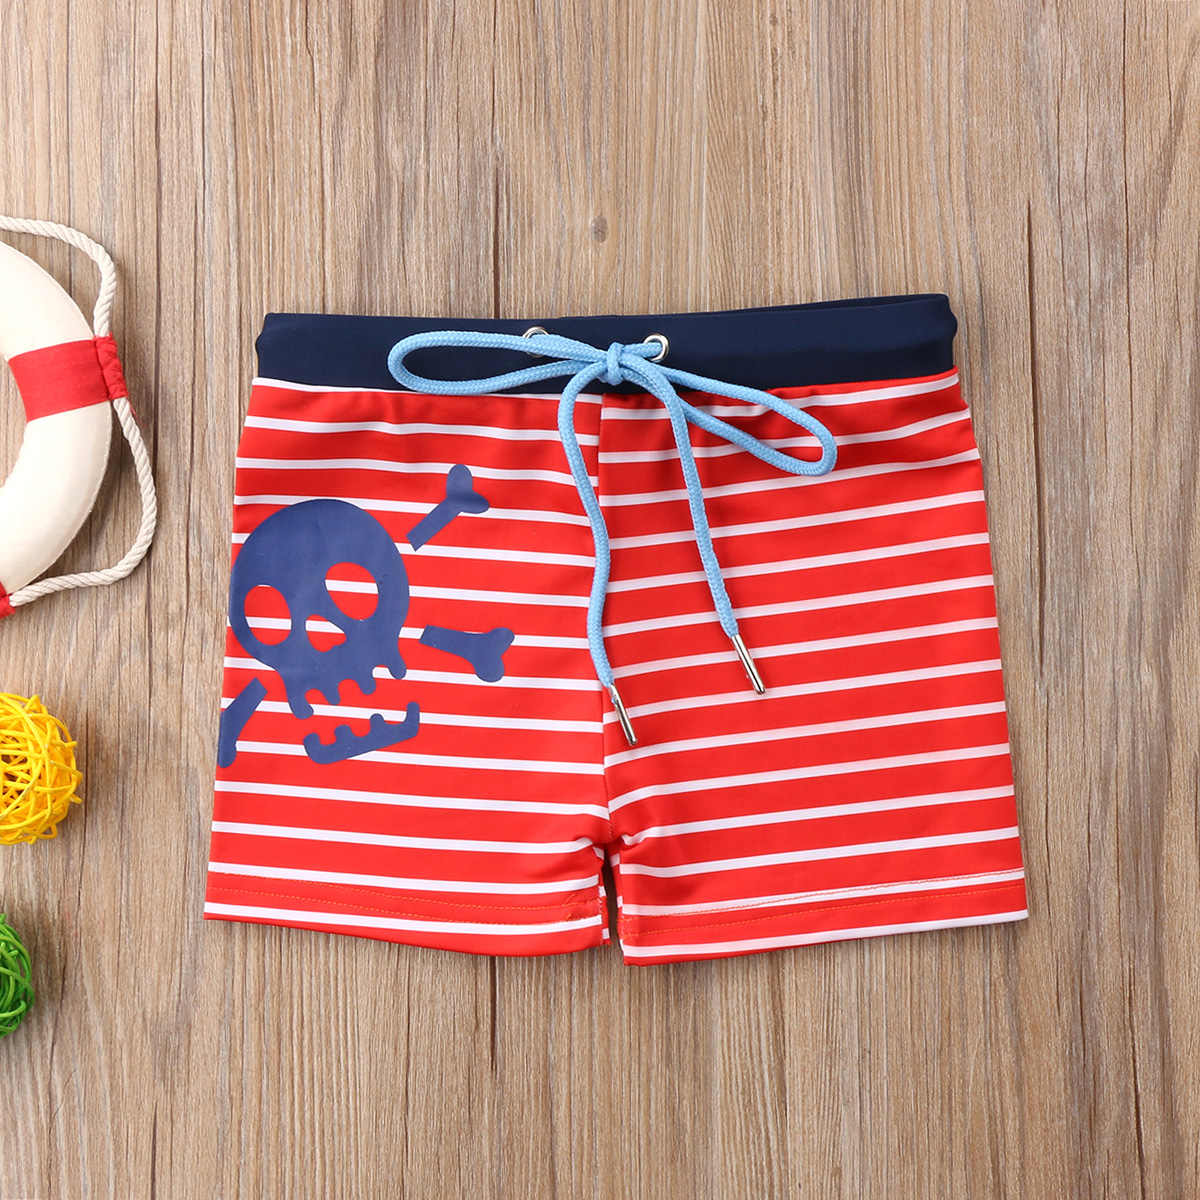 Speedos Boys Swimming Trunks Size 20 Inch Waist  New Age 3-4 Years